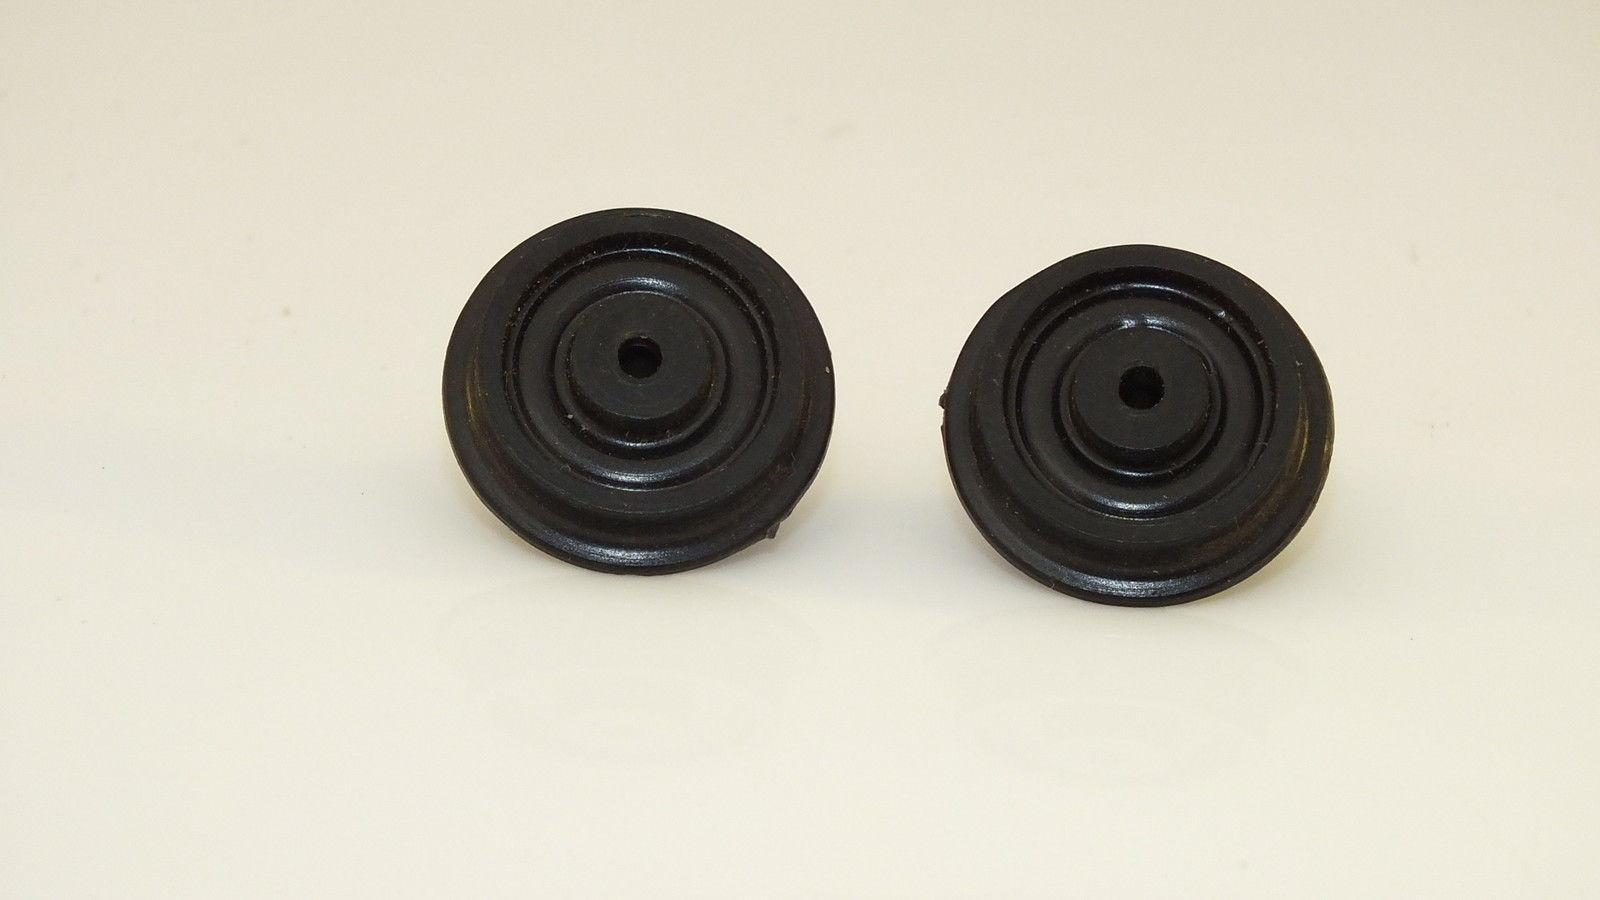 S5098 # 2 x HORNBY TRIANG NON POWERED BOGIE WHEEL TC SERIES /A3 TENDER     I3A